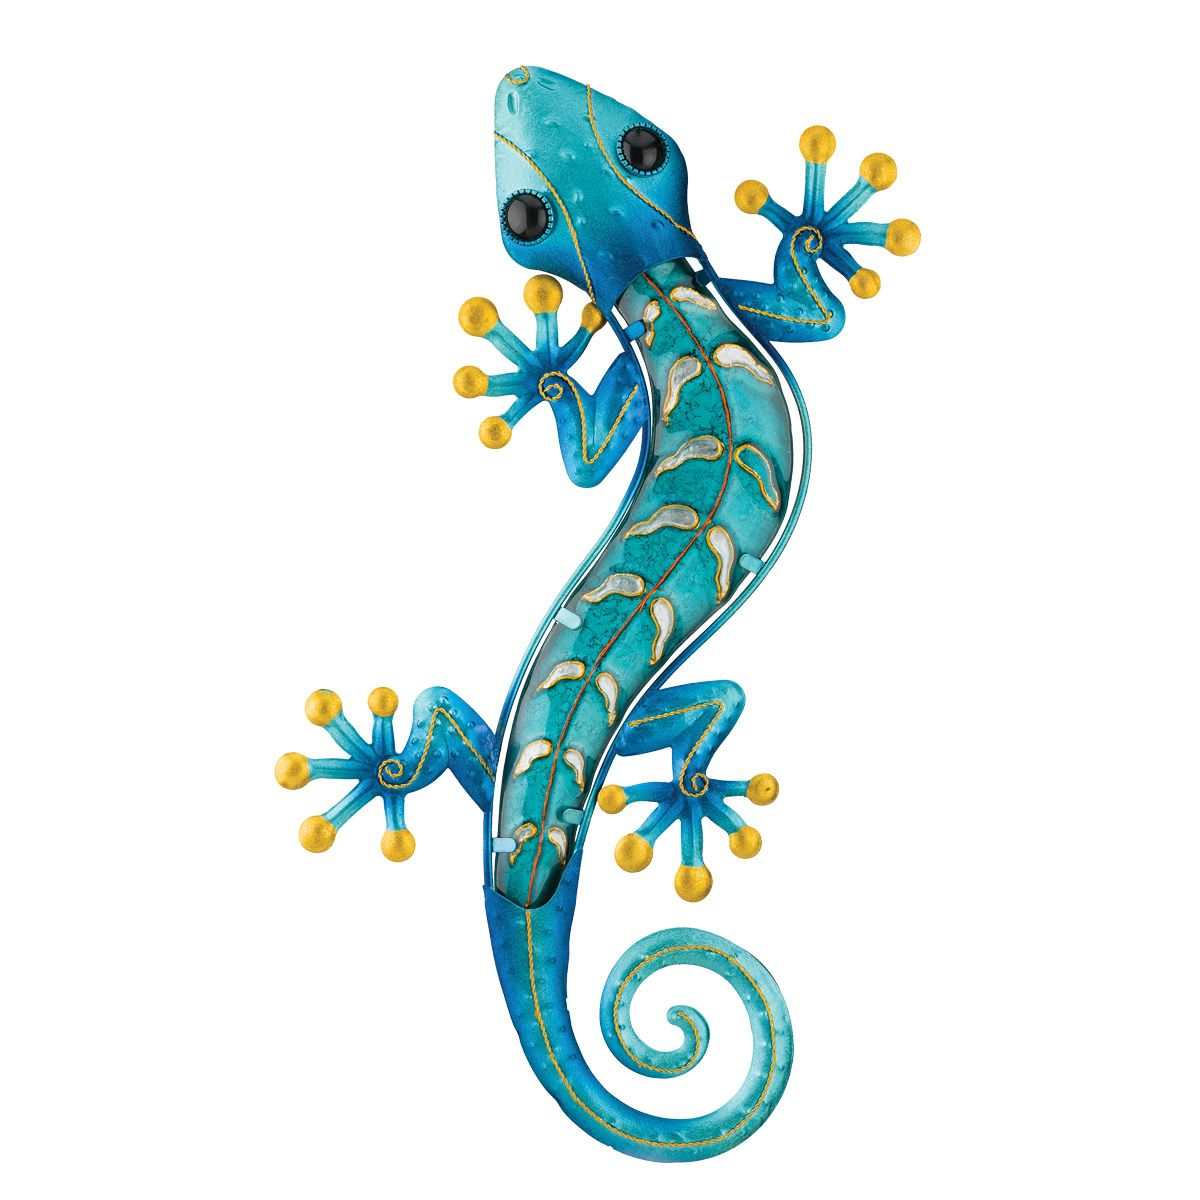 Rustic Metal Wall Art: Metal Gecko Wall Art – Blue Intended For Widely Used Gecko Wall Decor (View 8 of 20)